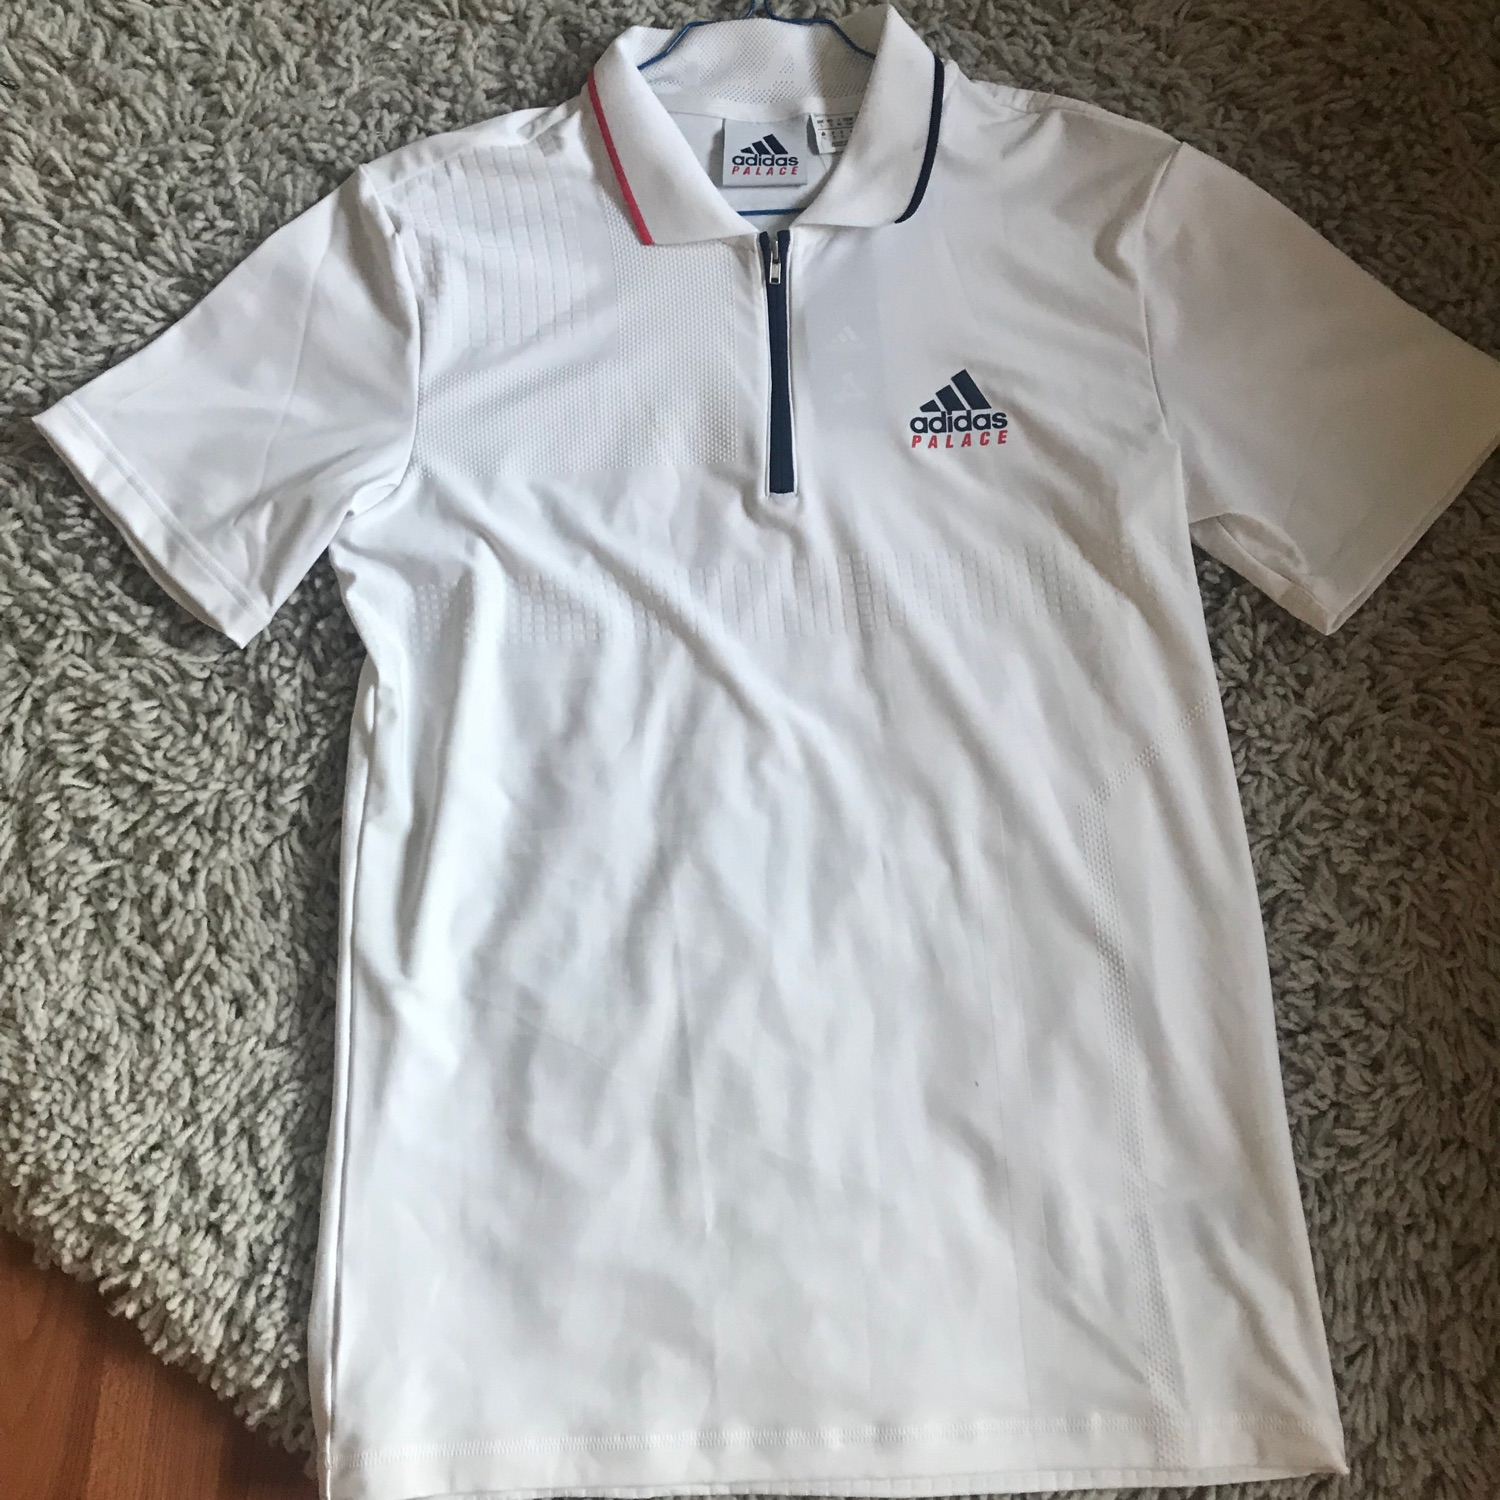 e0c4dd58 Adidas X Palace On Court Jacquard Polo